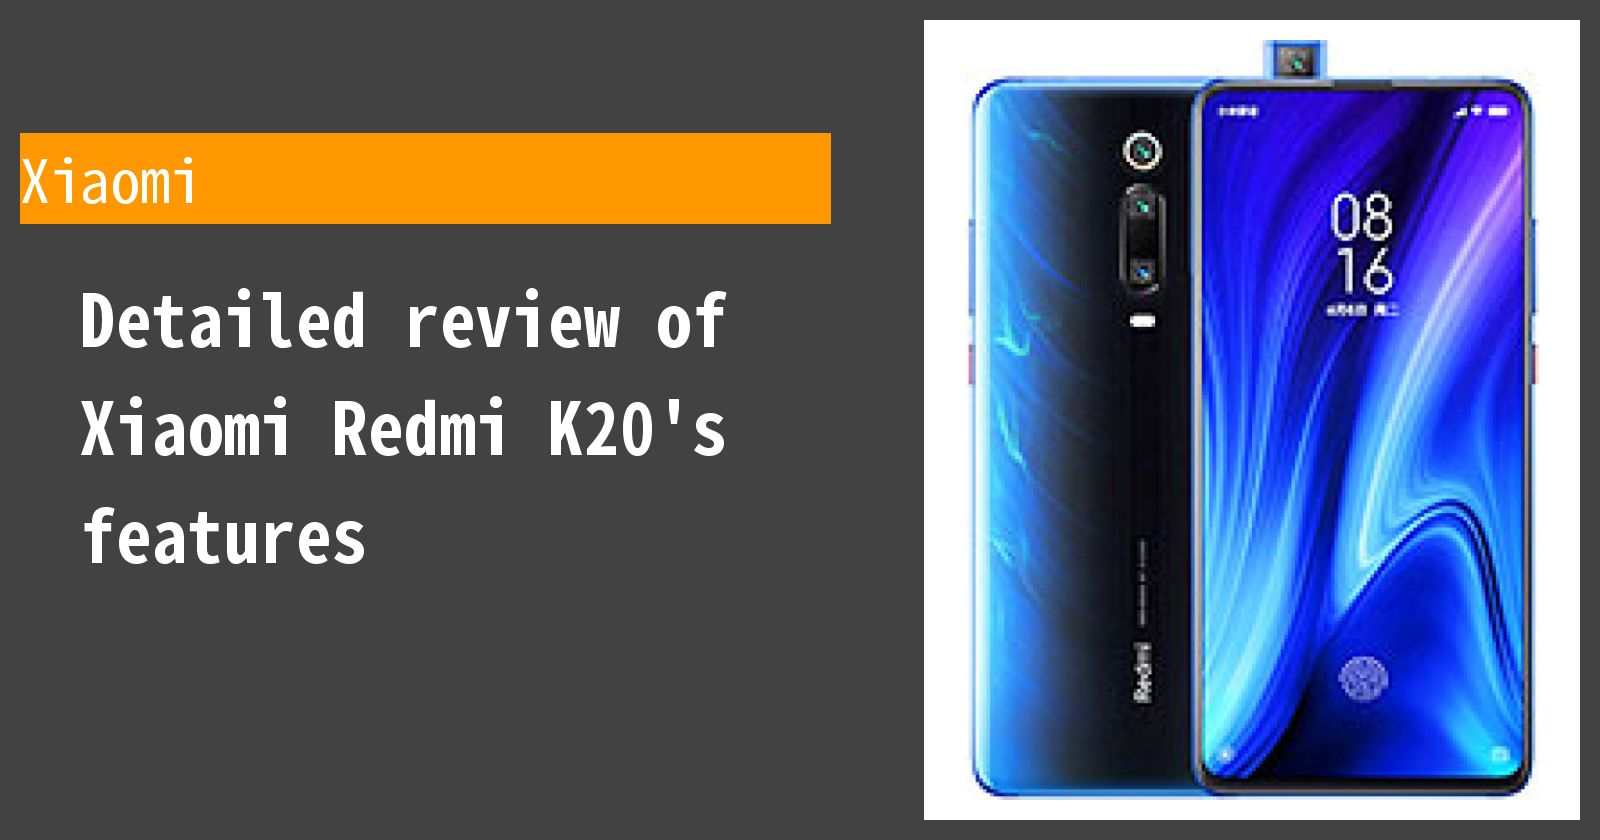 Detailed review of Xiaomi Redmi K20's features